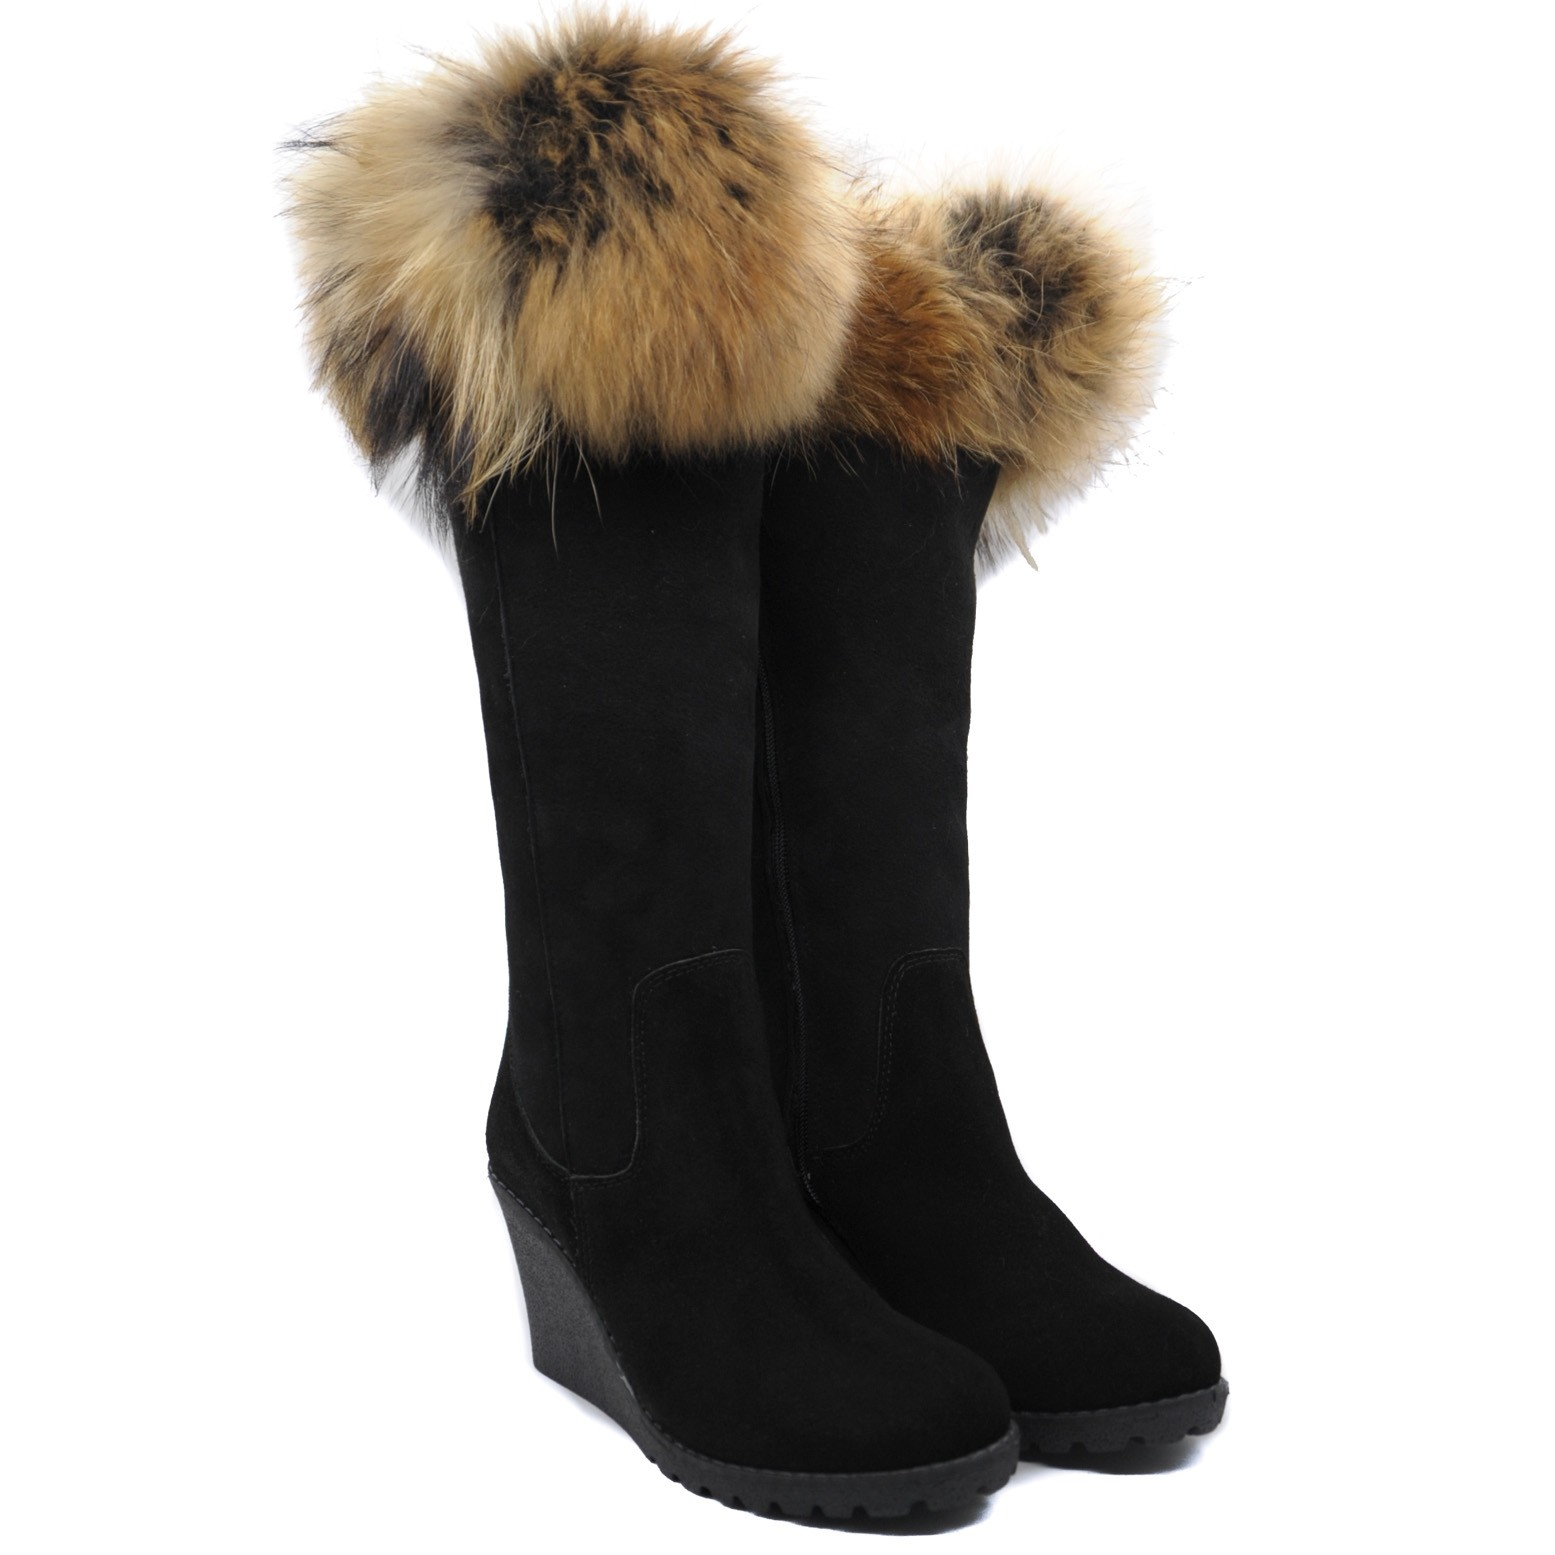 Pegia Black Suede Boots with Inner Wedge and Woolmark Certified Wool Lining with Fur Top and Side Zip